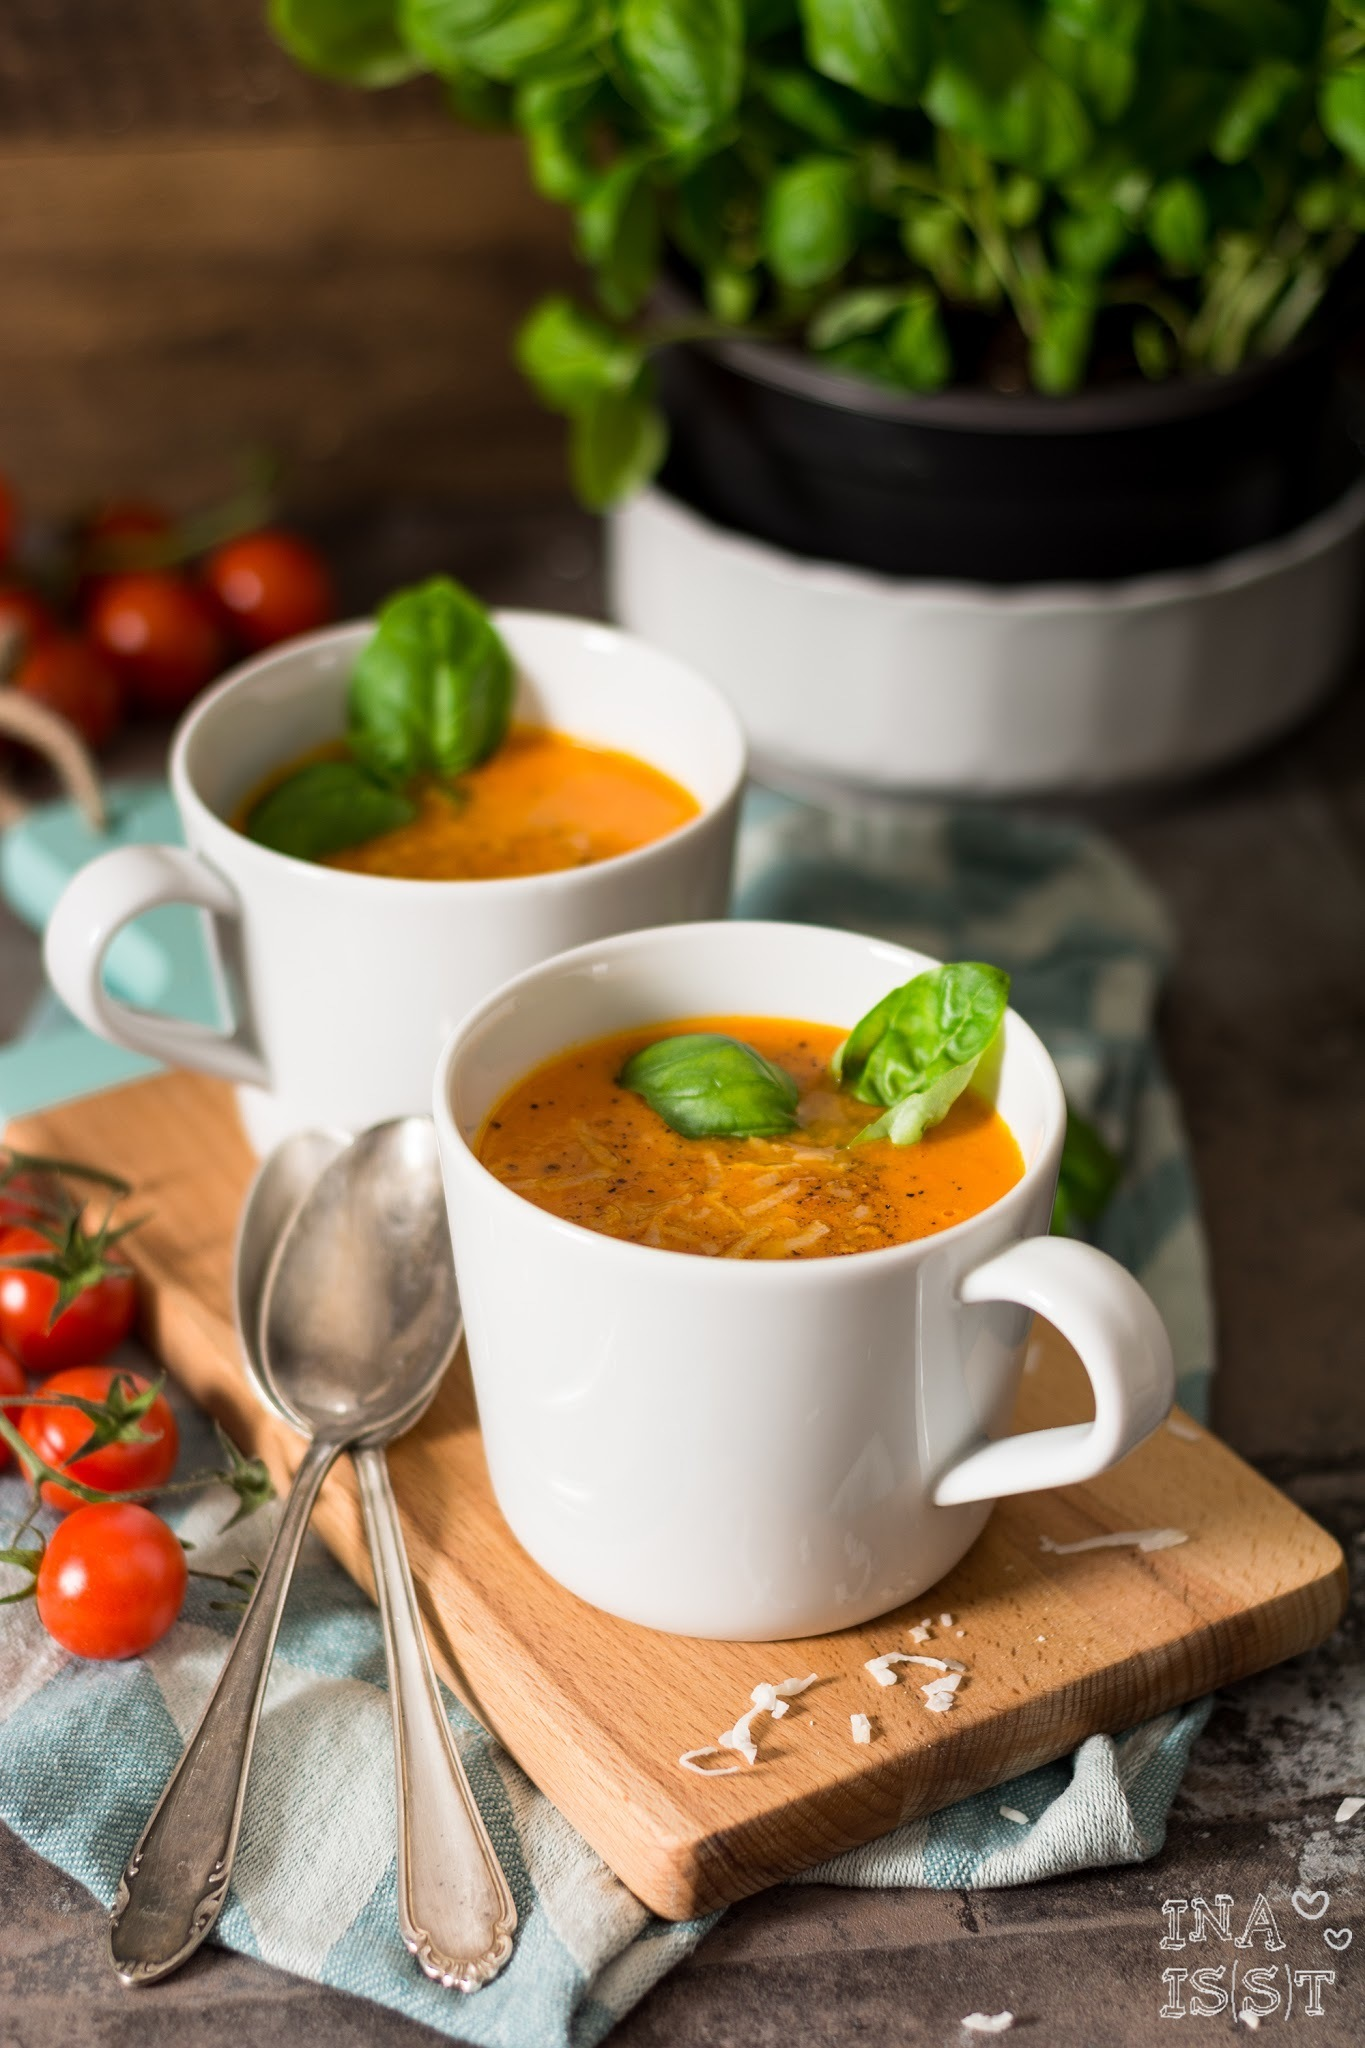 Vegan kochen mit Kokos - Tomaten-Kokos-Suppe mit Basilikum /// Vegan cooking with coconut - tomato-coconut soup